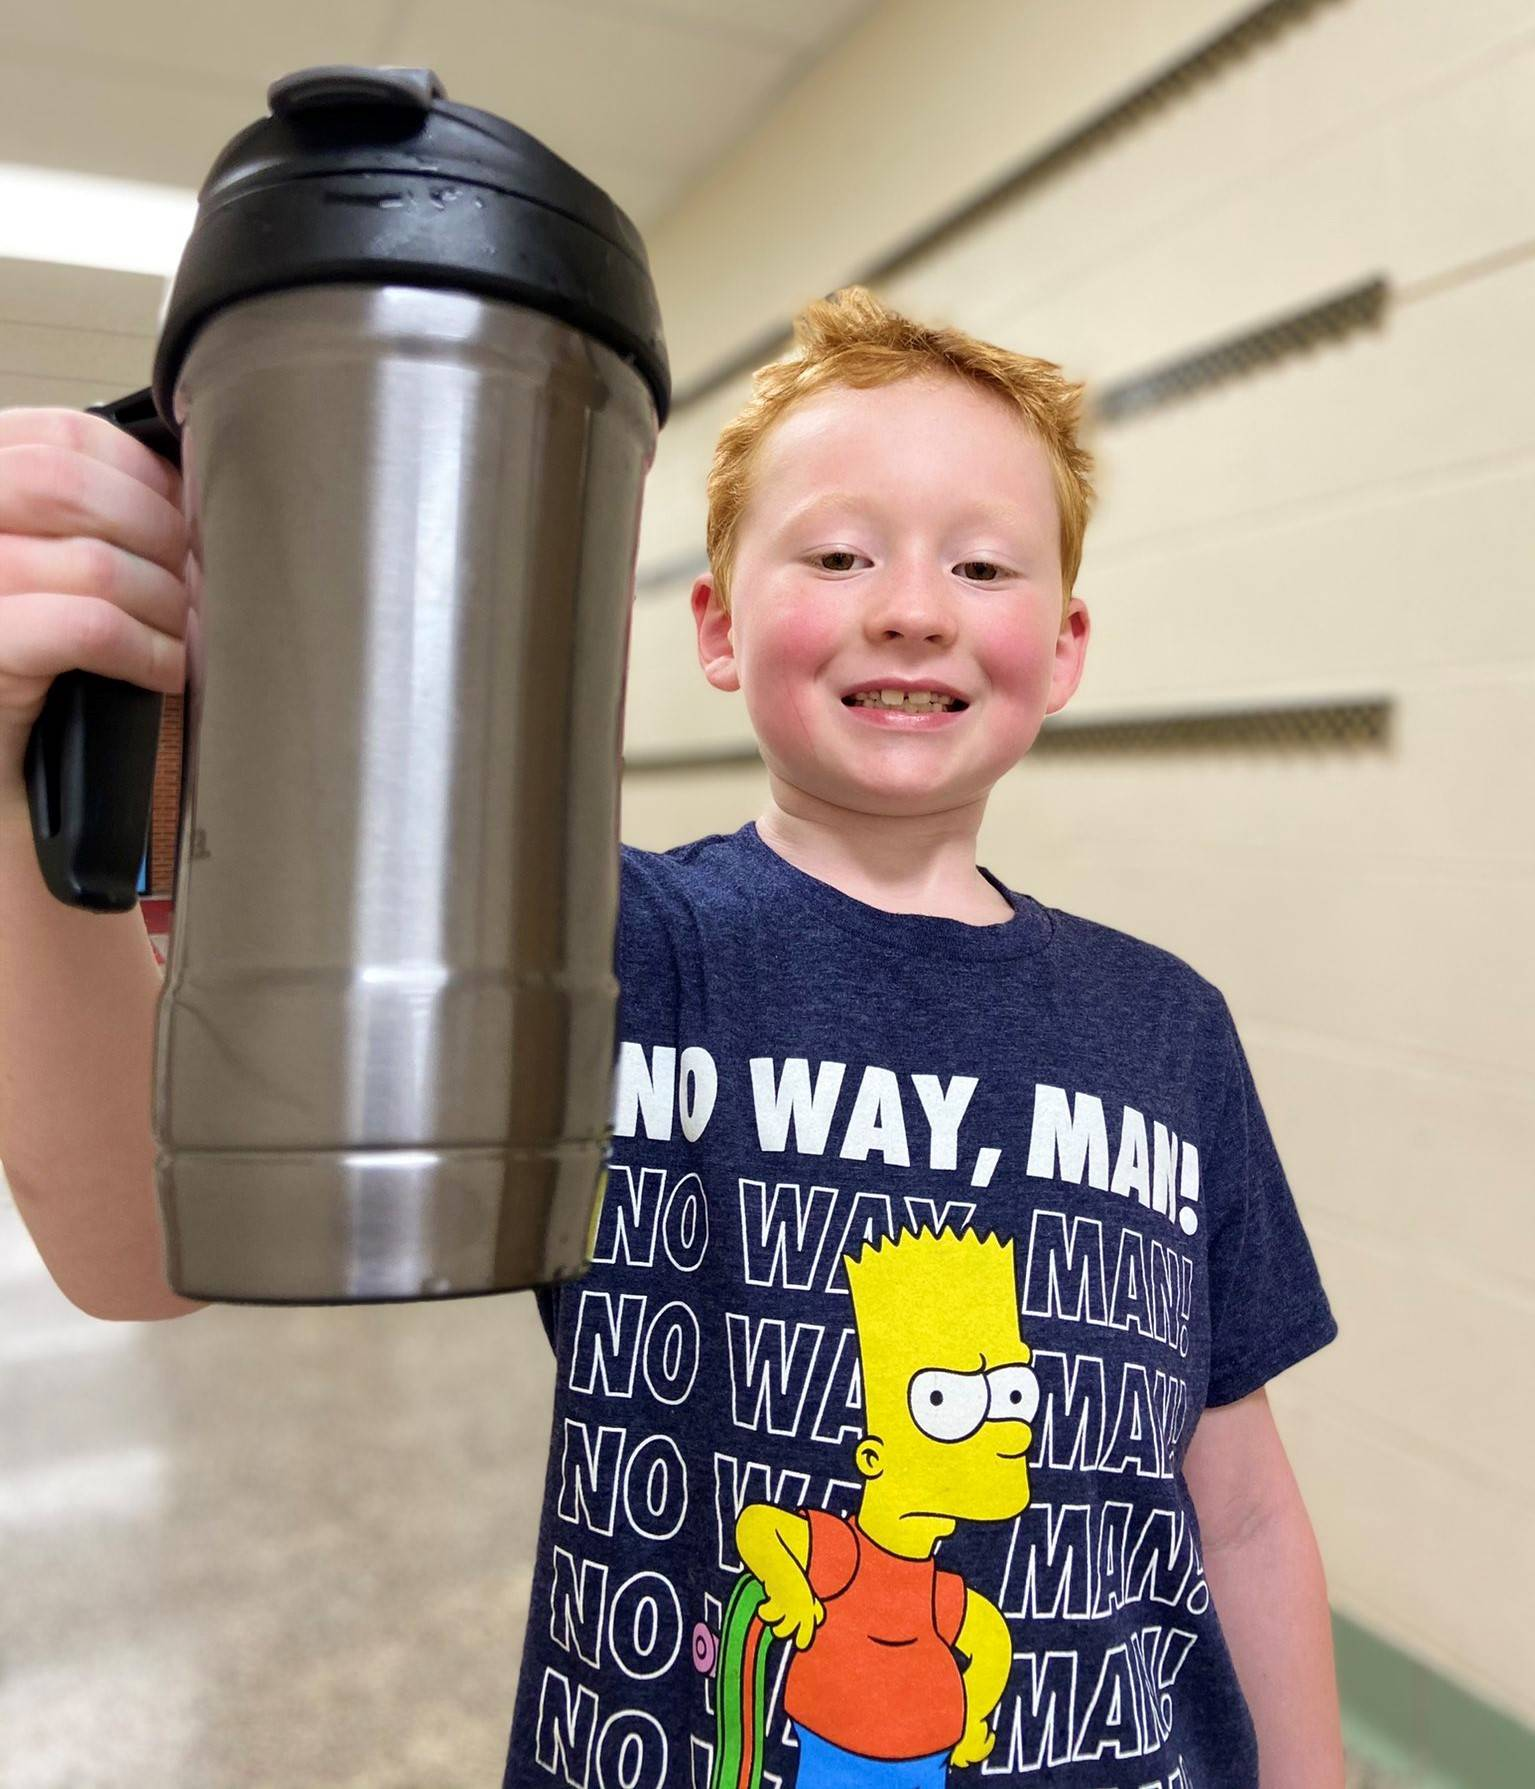 Photo 15:  Munson student holding up a travel mug and standing in the hallway smiling for the camera